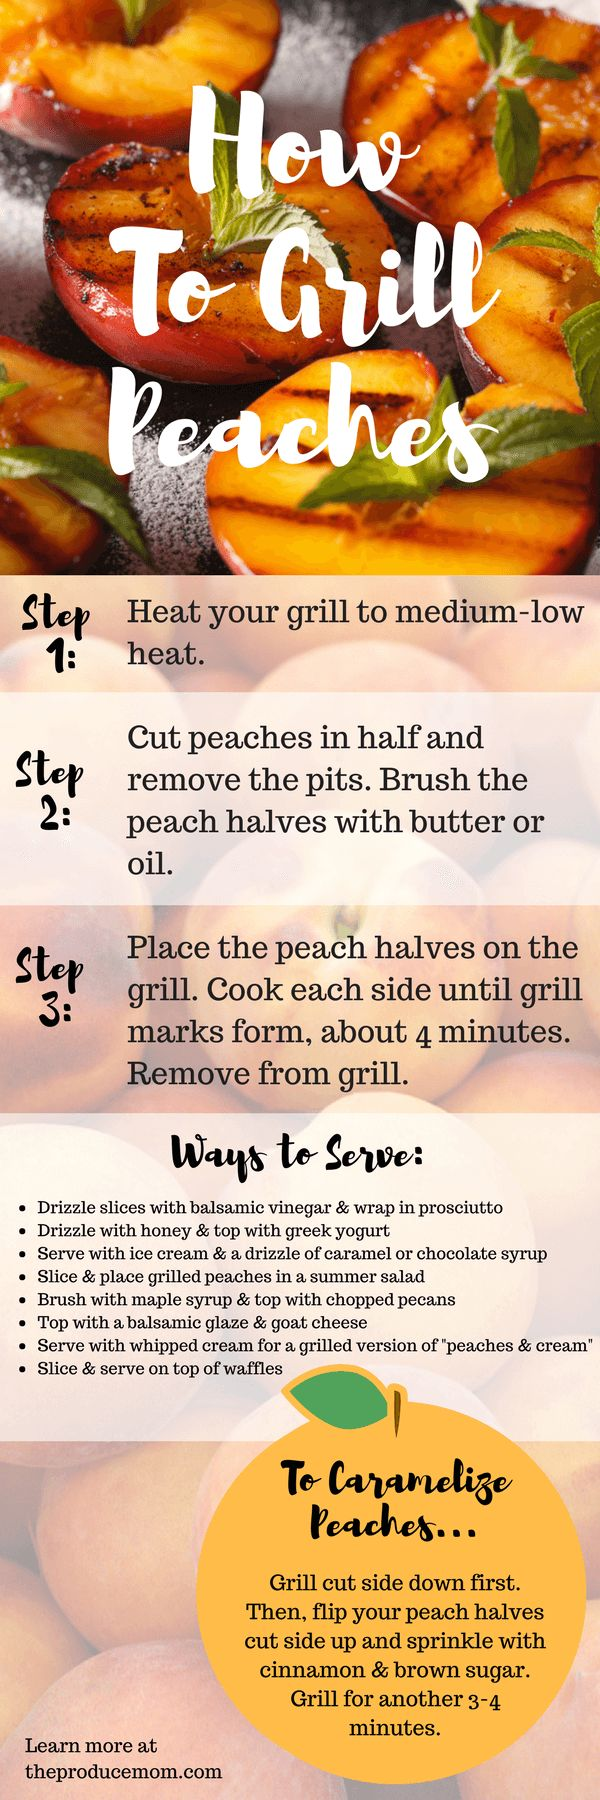 Grilled peaches | How to grill peaches infographic